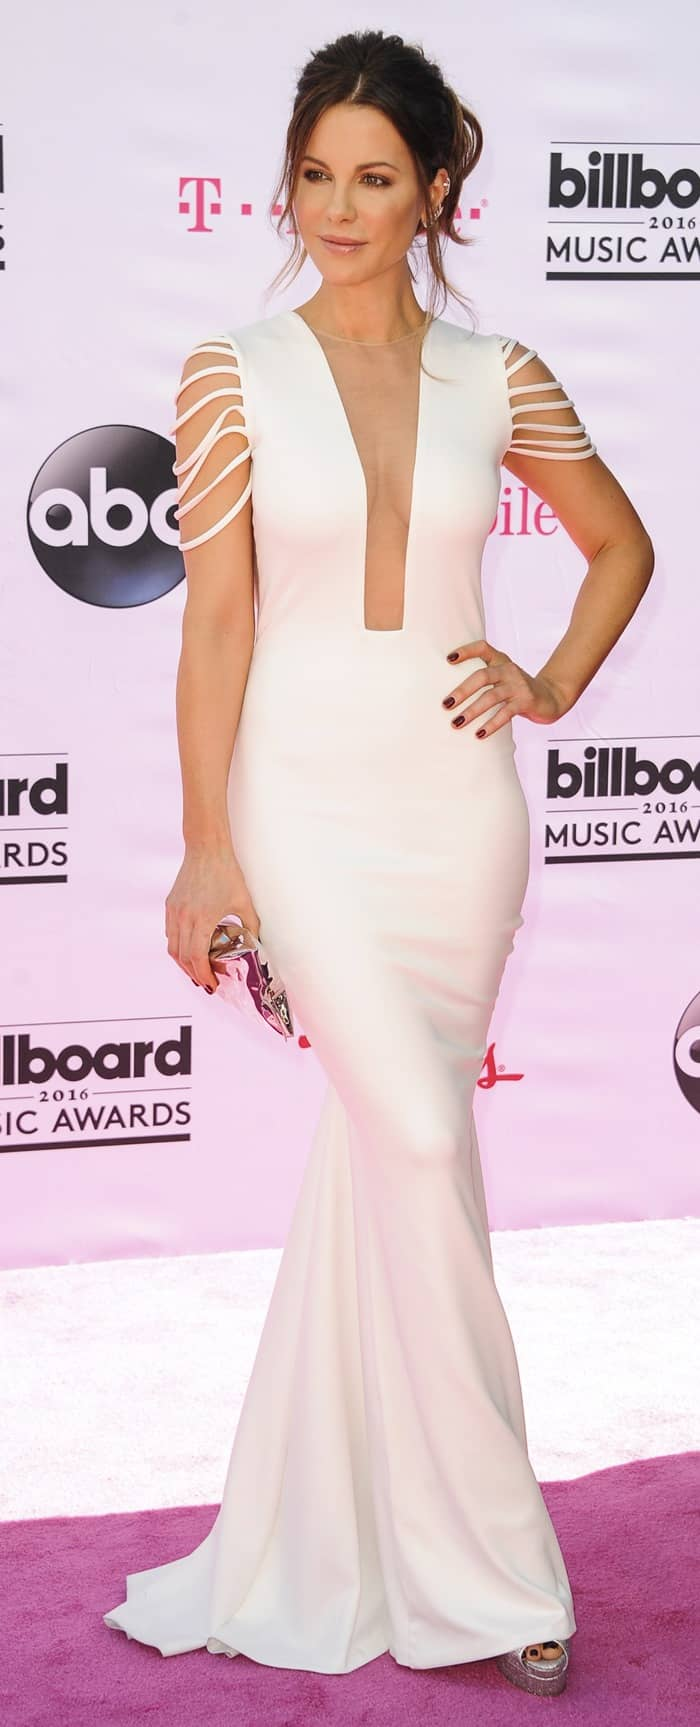 2016 Billboard Music Awards arrivals at the T-Mobile Arena Las Vegas Featuring: Kate Beckinsale Where: Las Vegas, Nevada, United States When: 23 May 2016 Credit: Apega/WENN.com